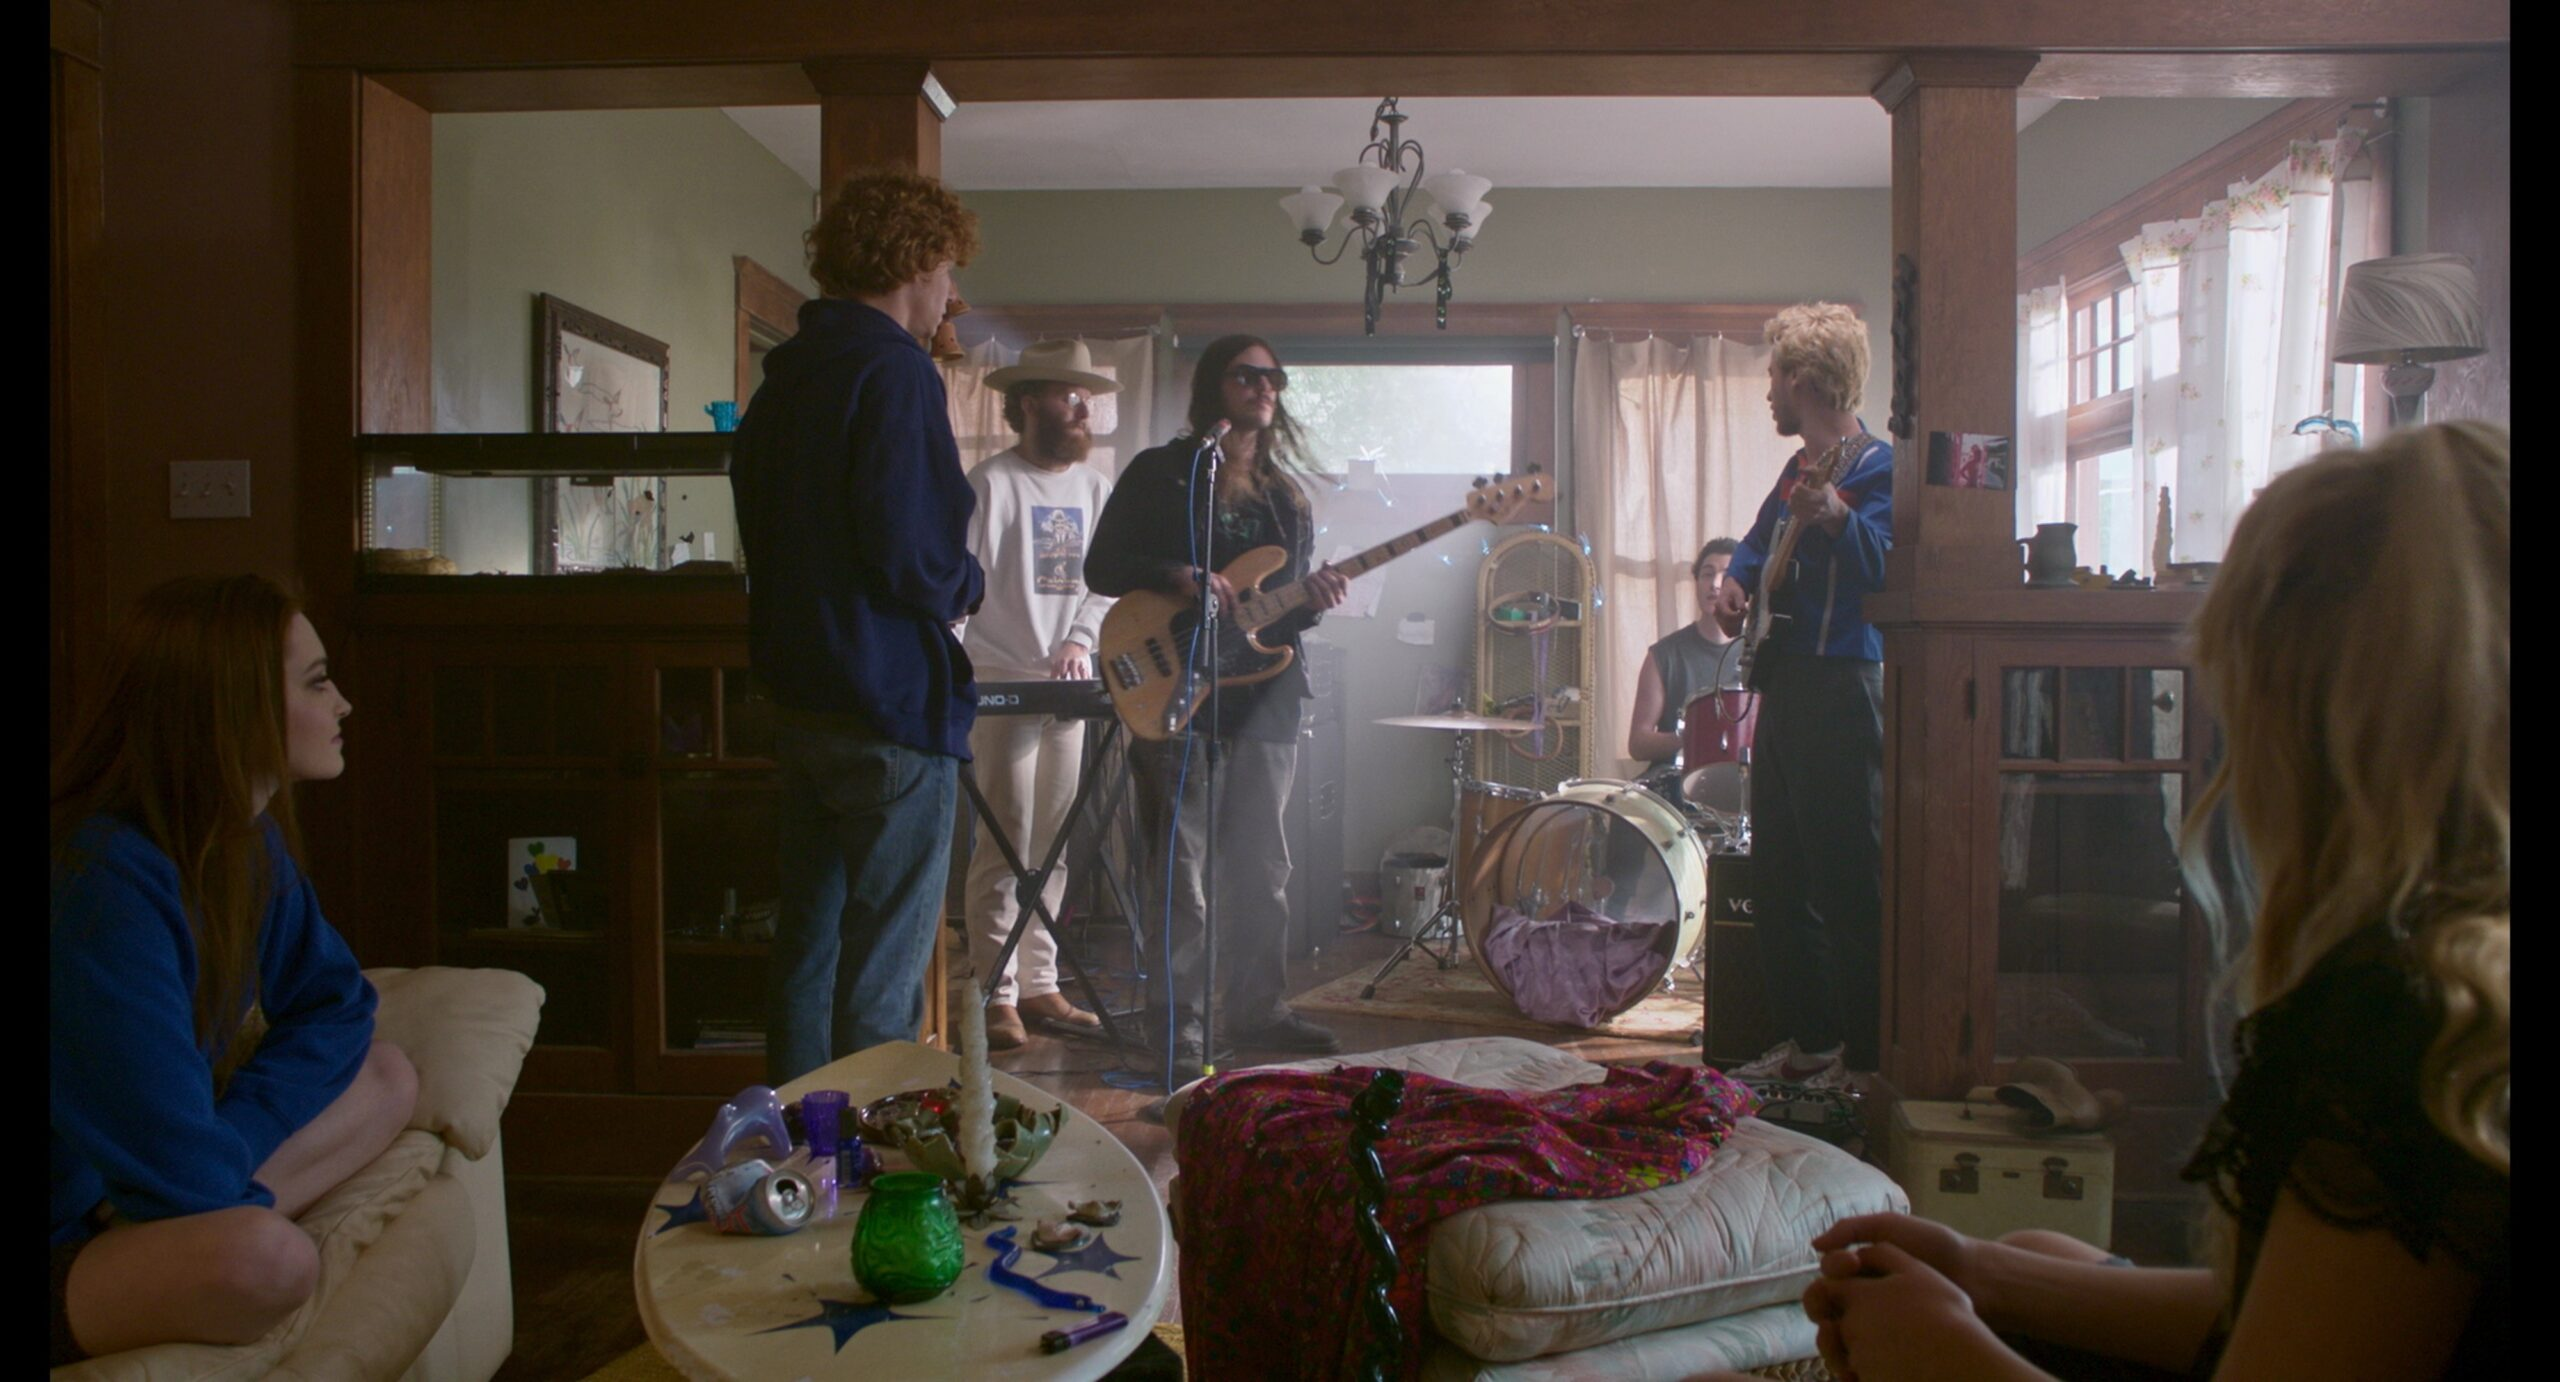 'Teenage Badass' Captures Indie Band Flavor, Even If It Opts For Tried and True Plot Threads